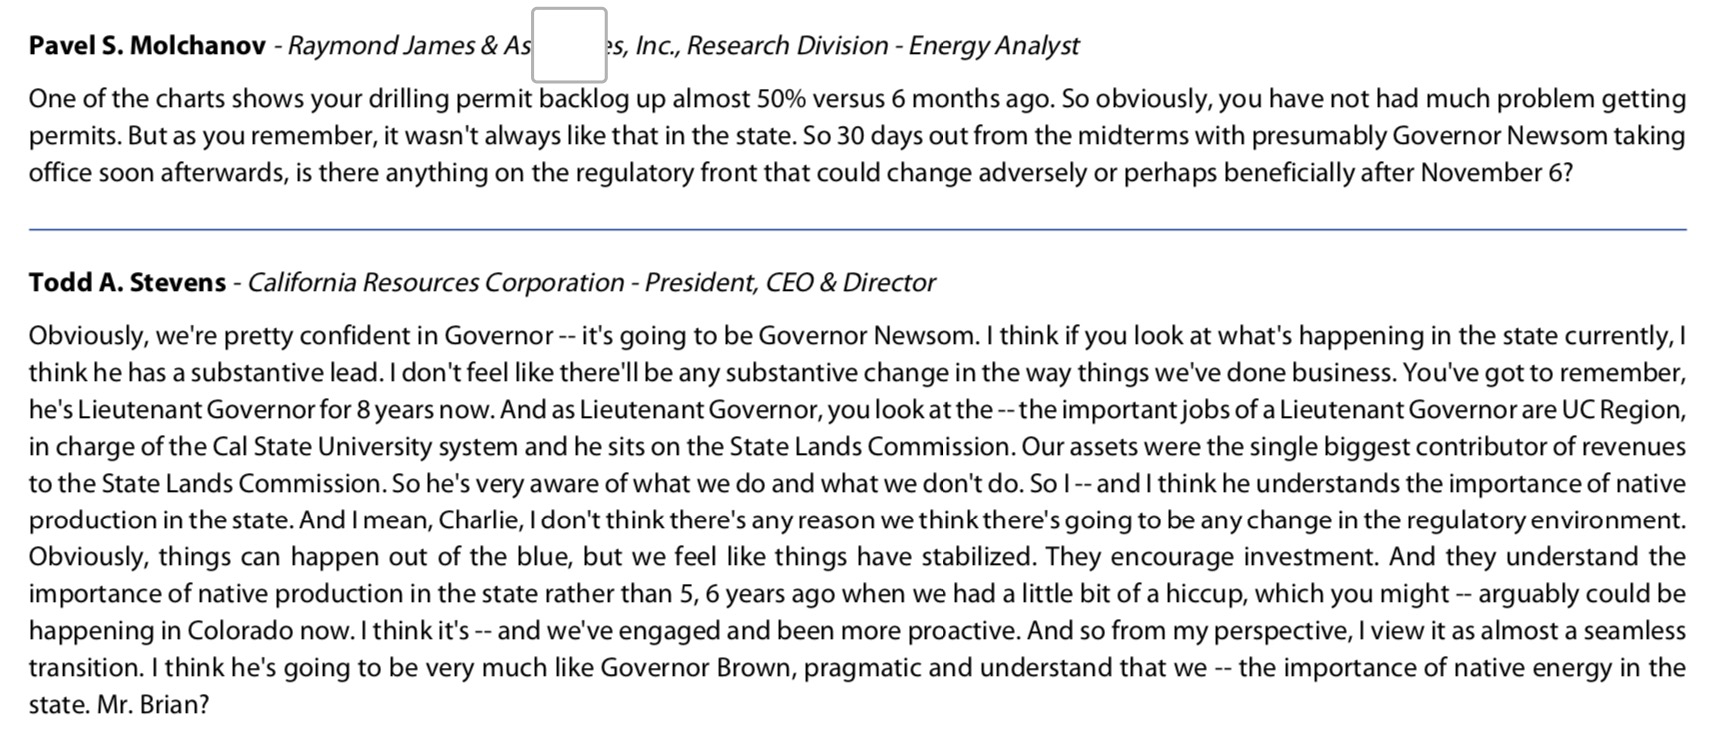 d4ee5233b In addition, we know from our research on Gov. Newsom that his only  hardline approach on oil and gas in California relates to fracking, which  is a minimal ...